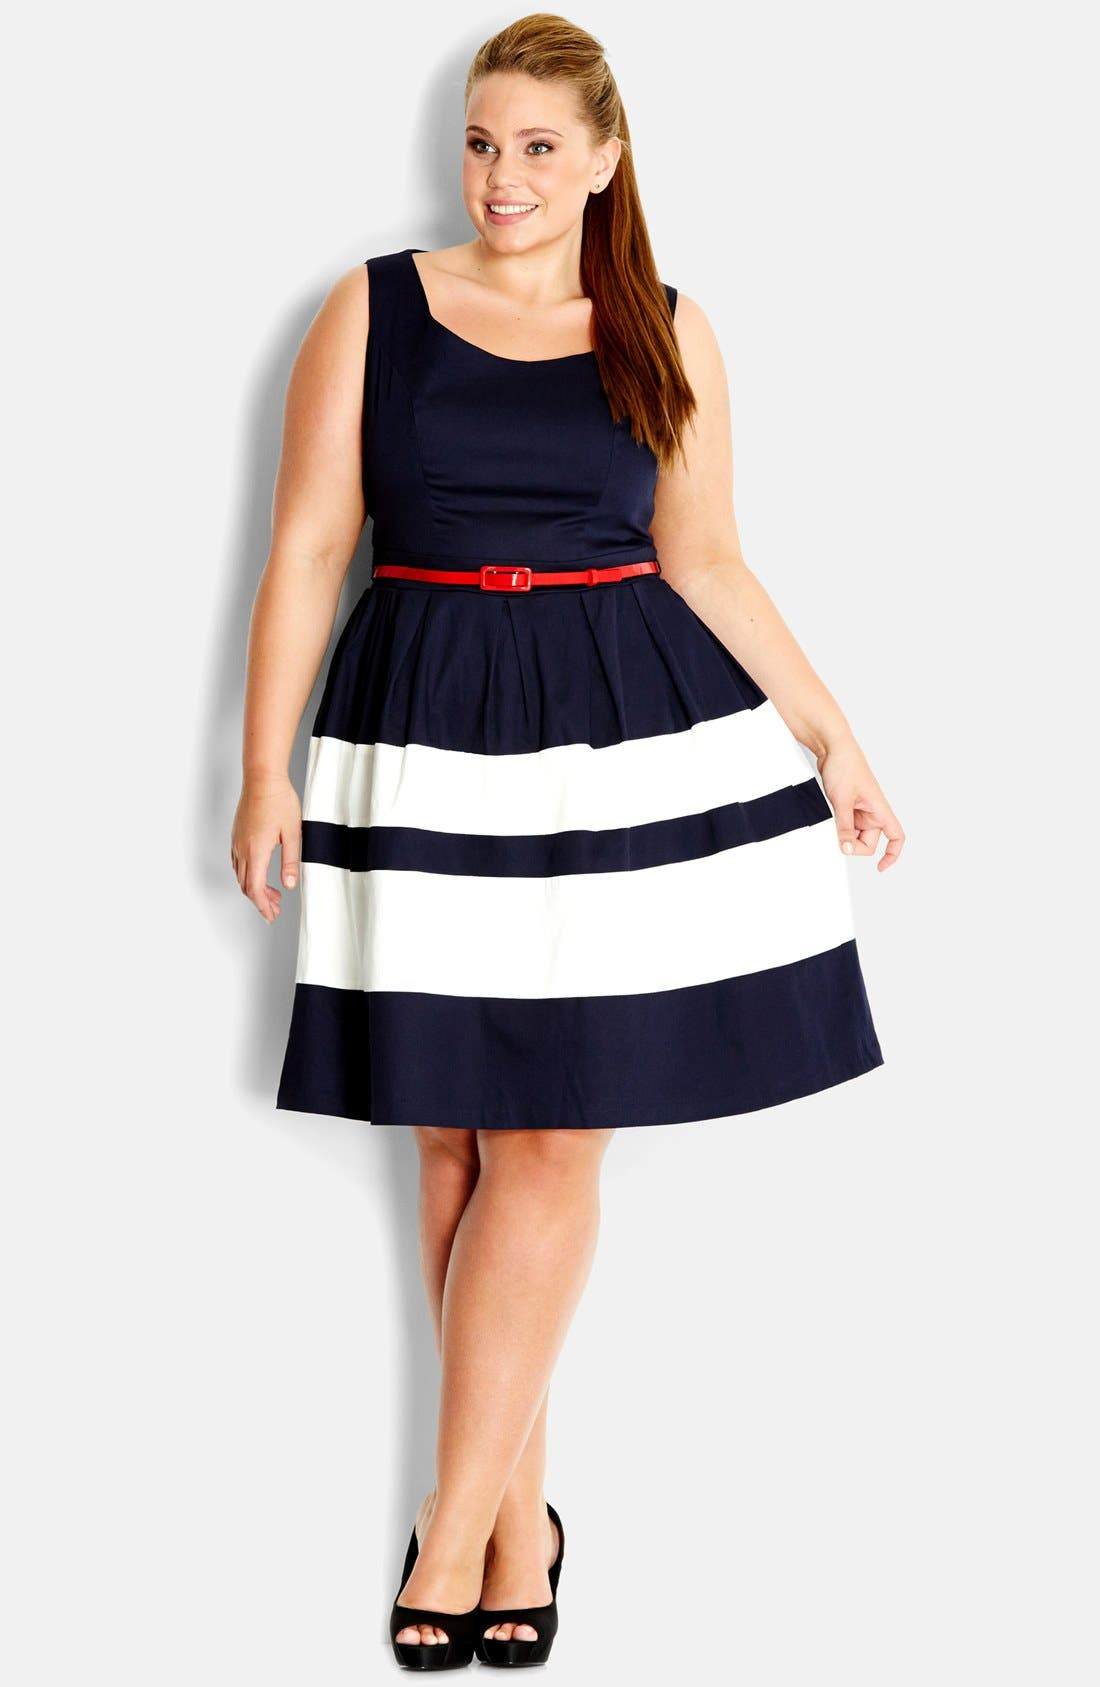 Alternate Image 1 Selected - City Chic 'Landlover' Belted Fit & Flare Dress (Plus Size)